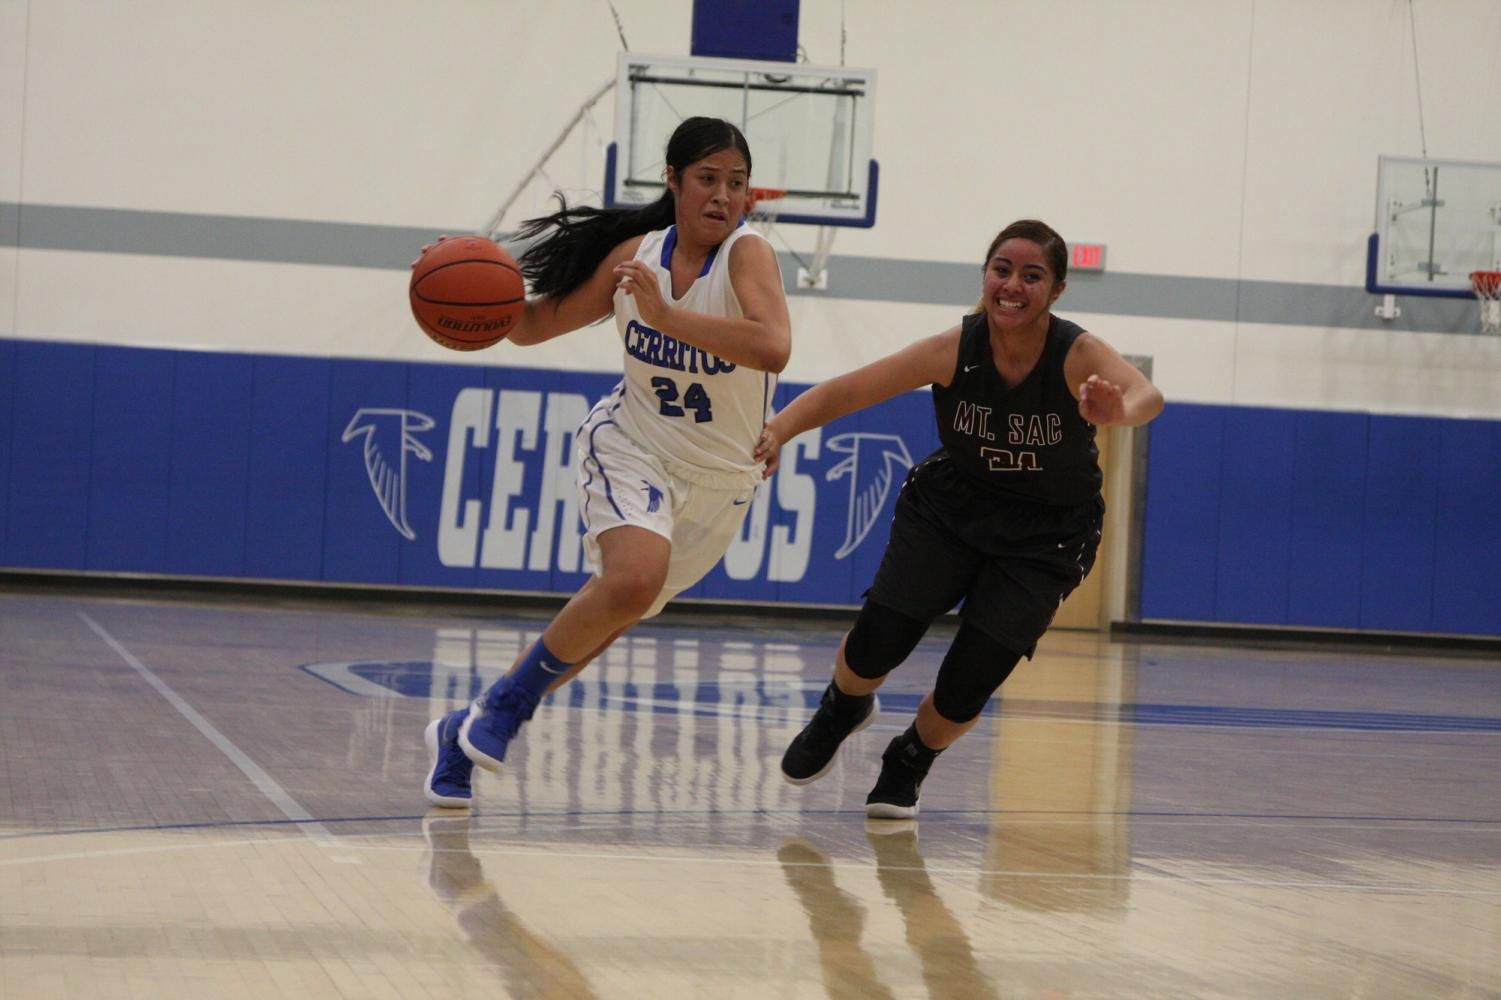 No. 24 Serena Rendon drives the ball past a Mt. SAC defender. Rendon had a team high 23 points.